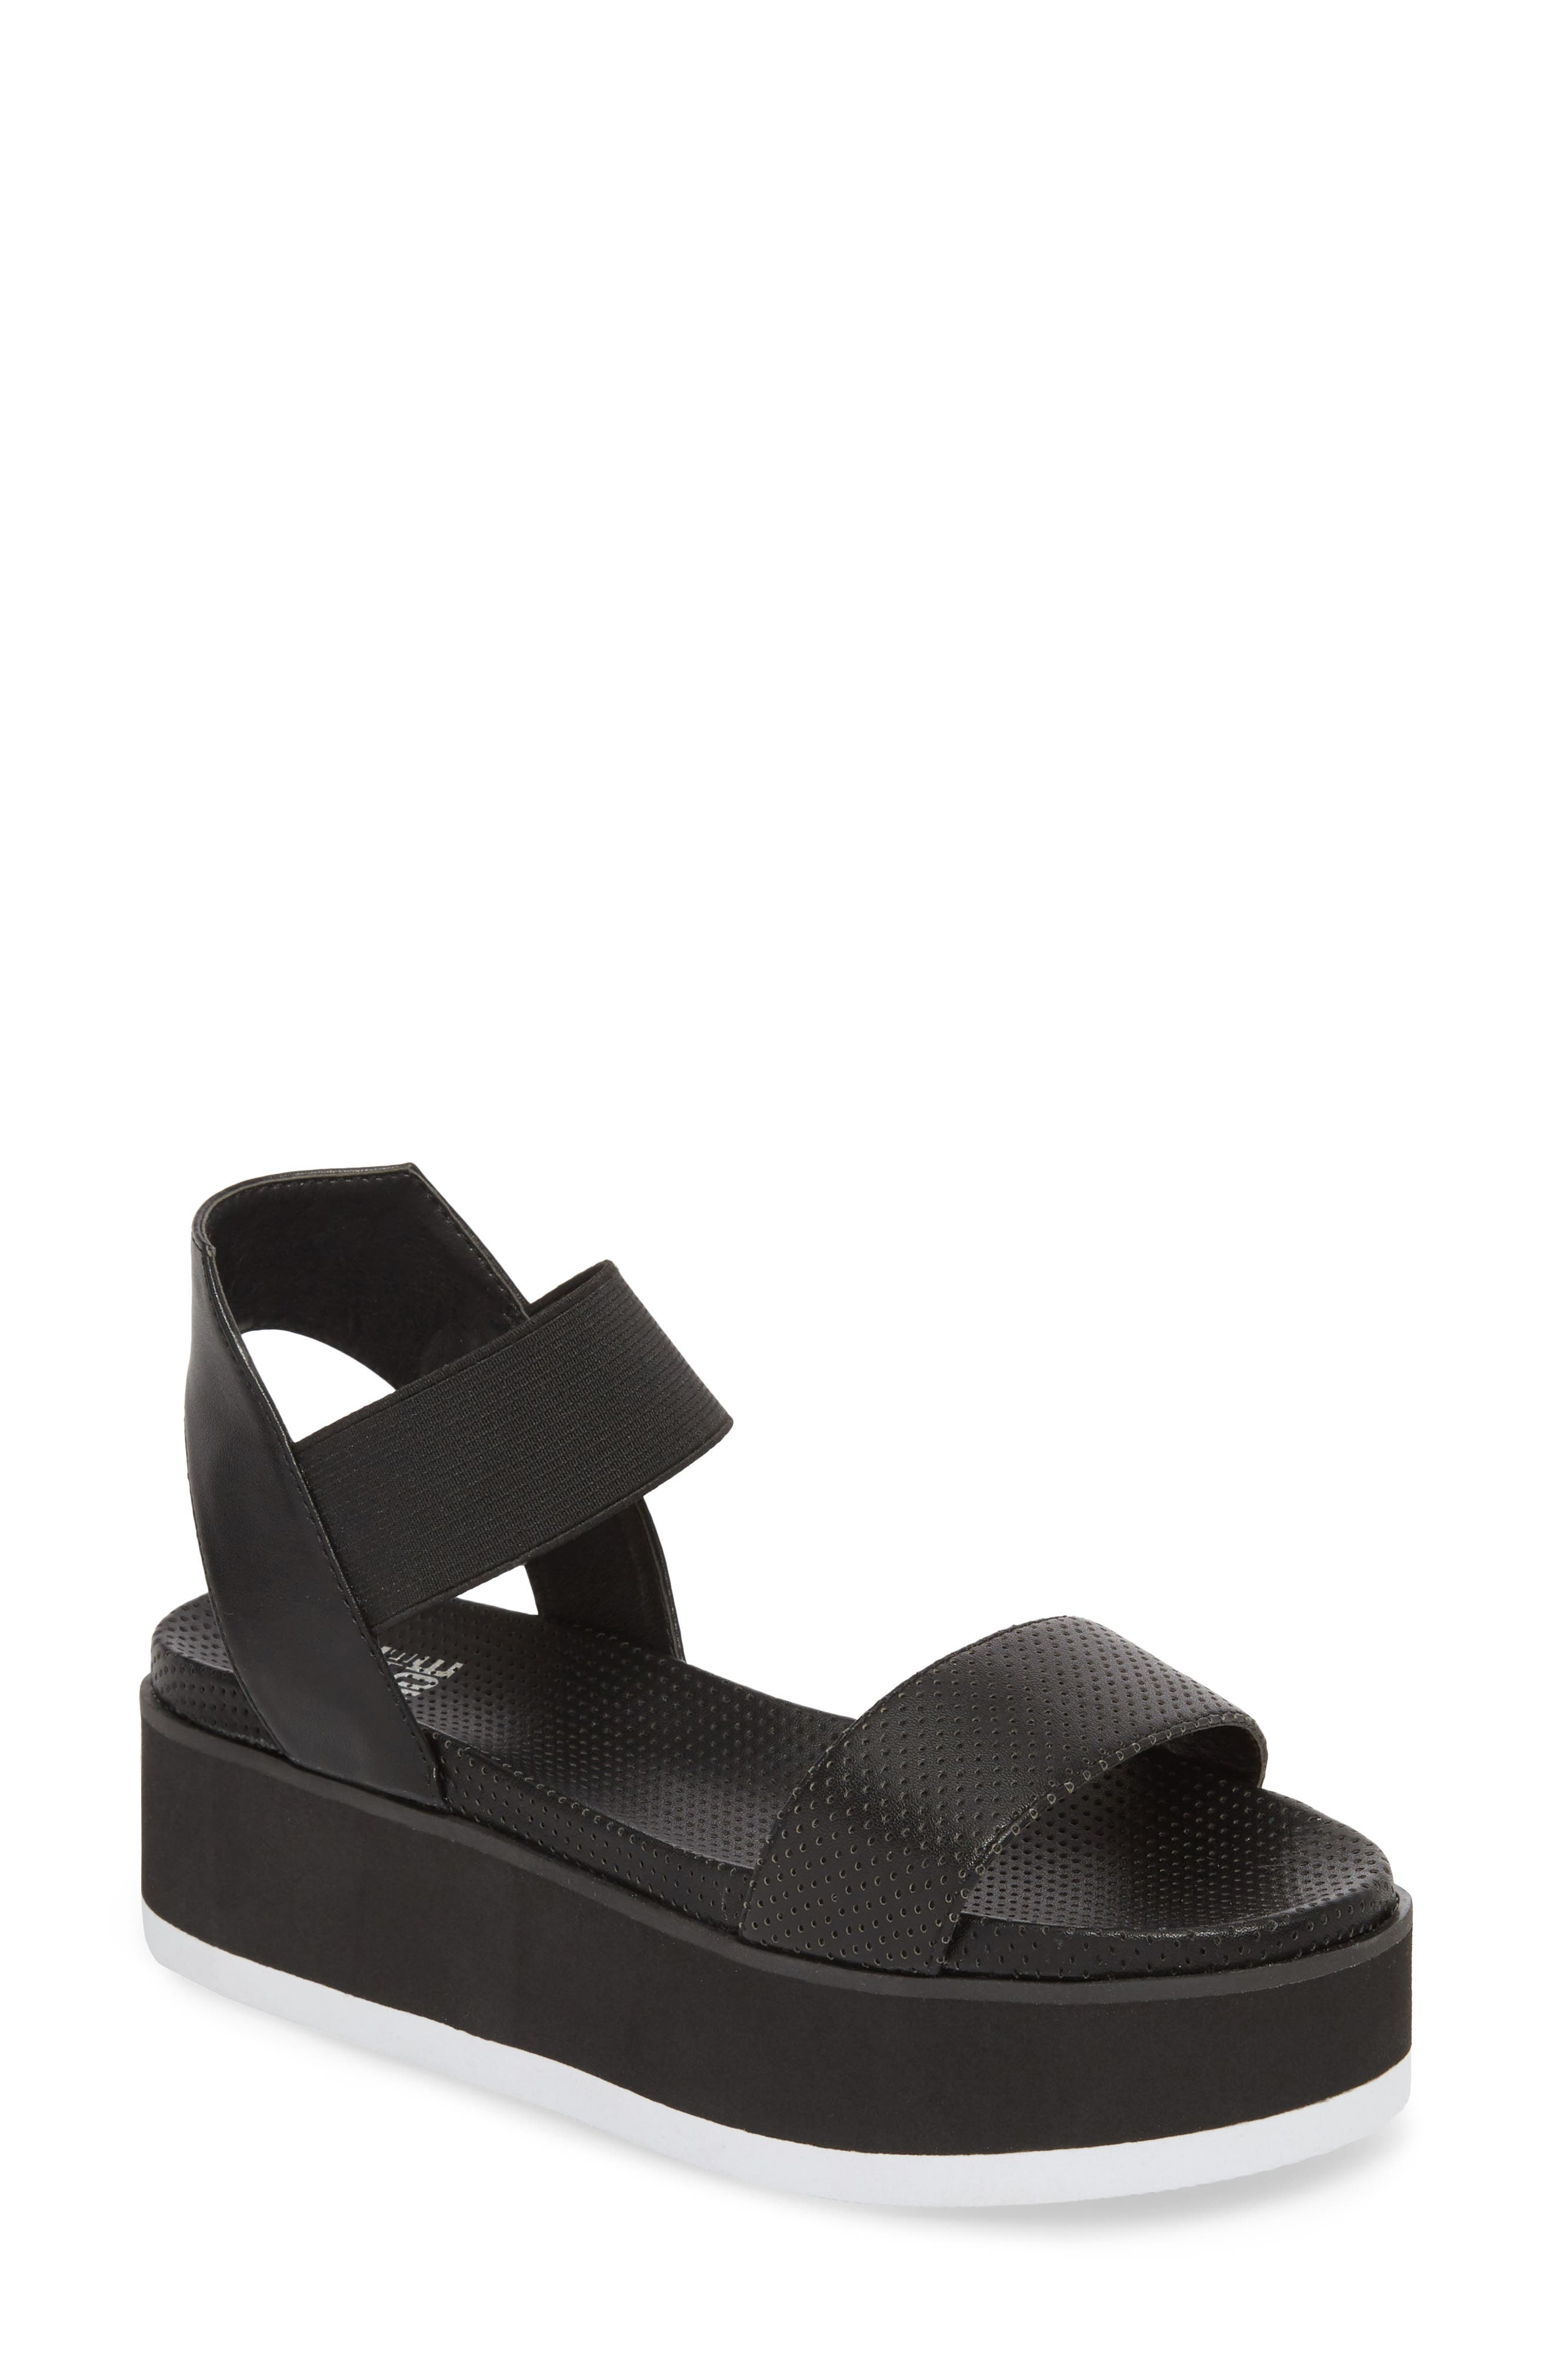 Jane and the Shoe Josie Perforated Platform Sandal (Women)